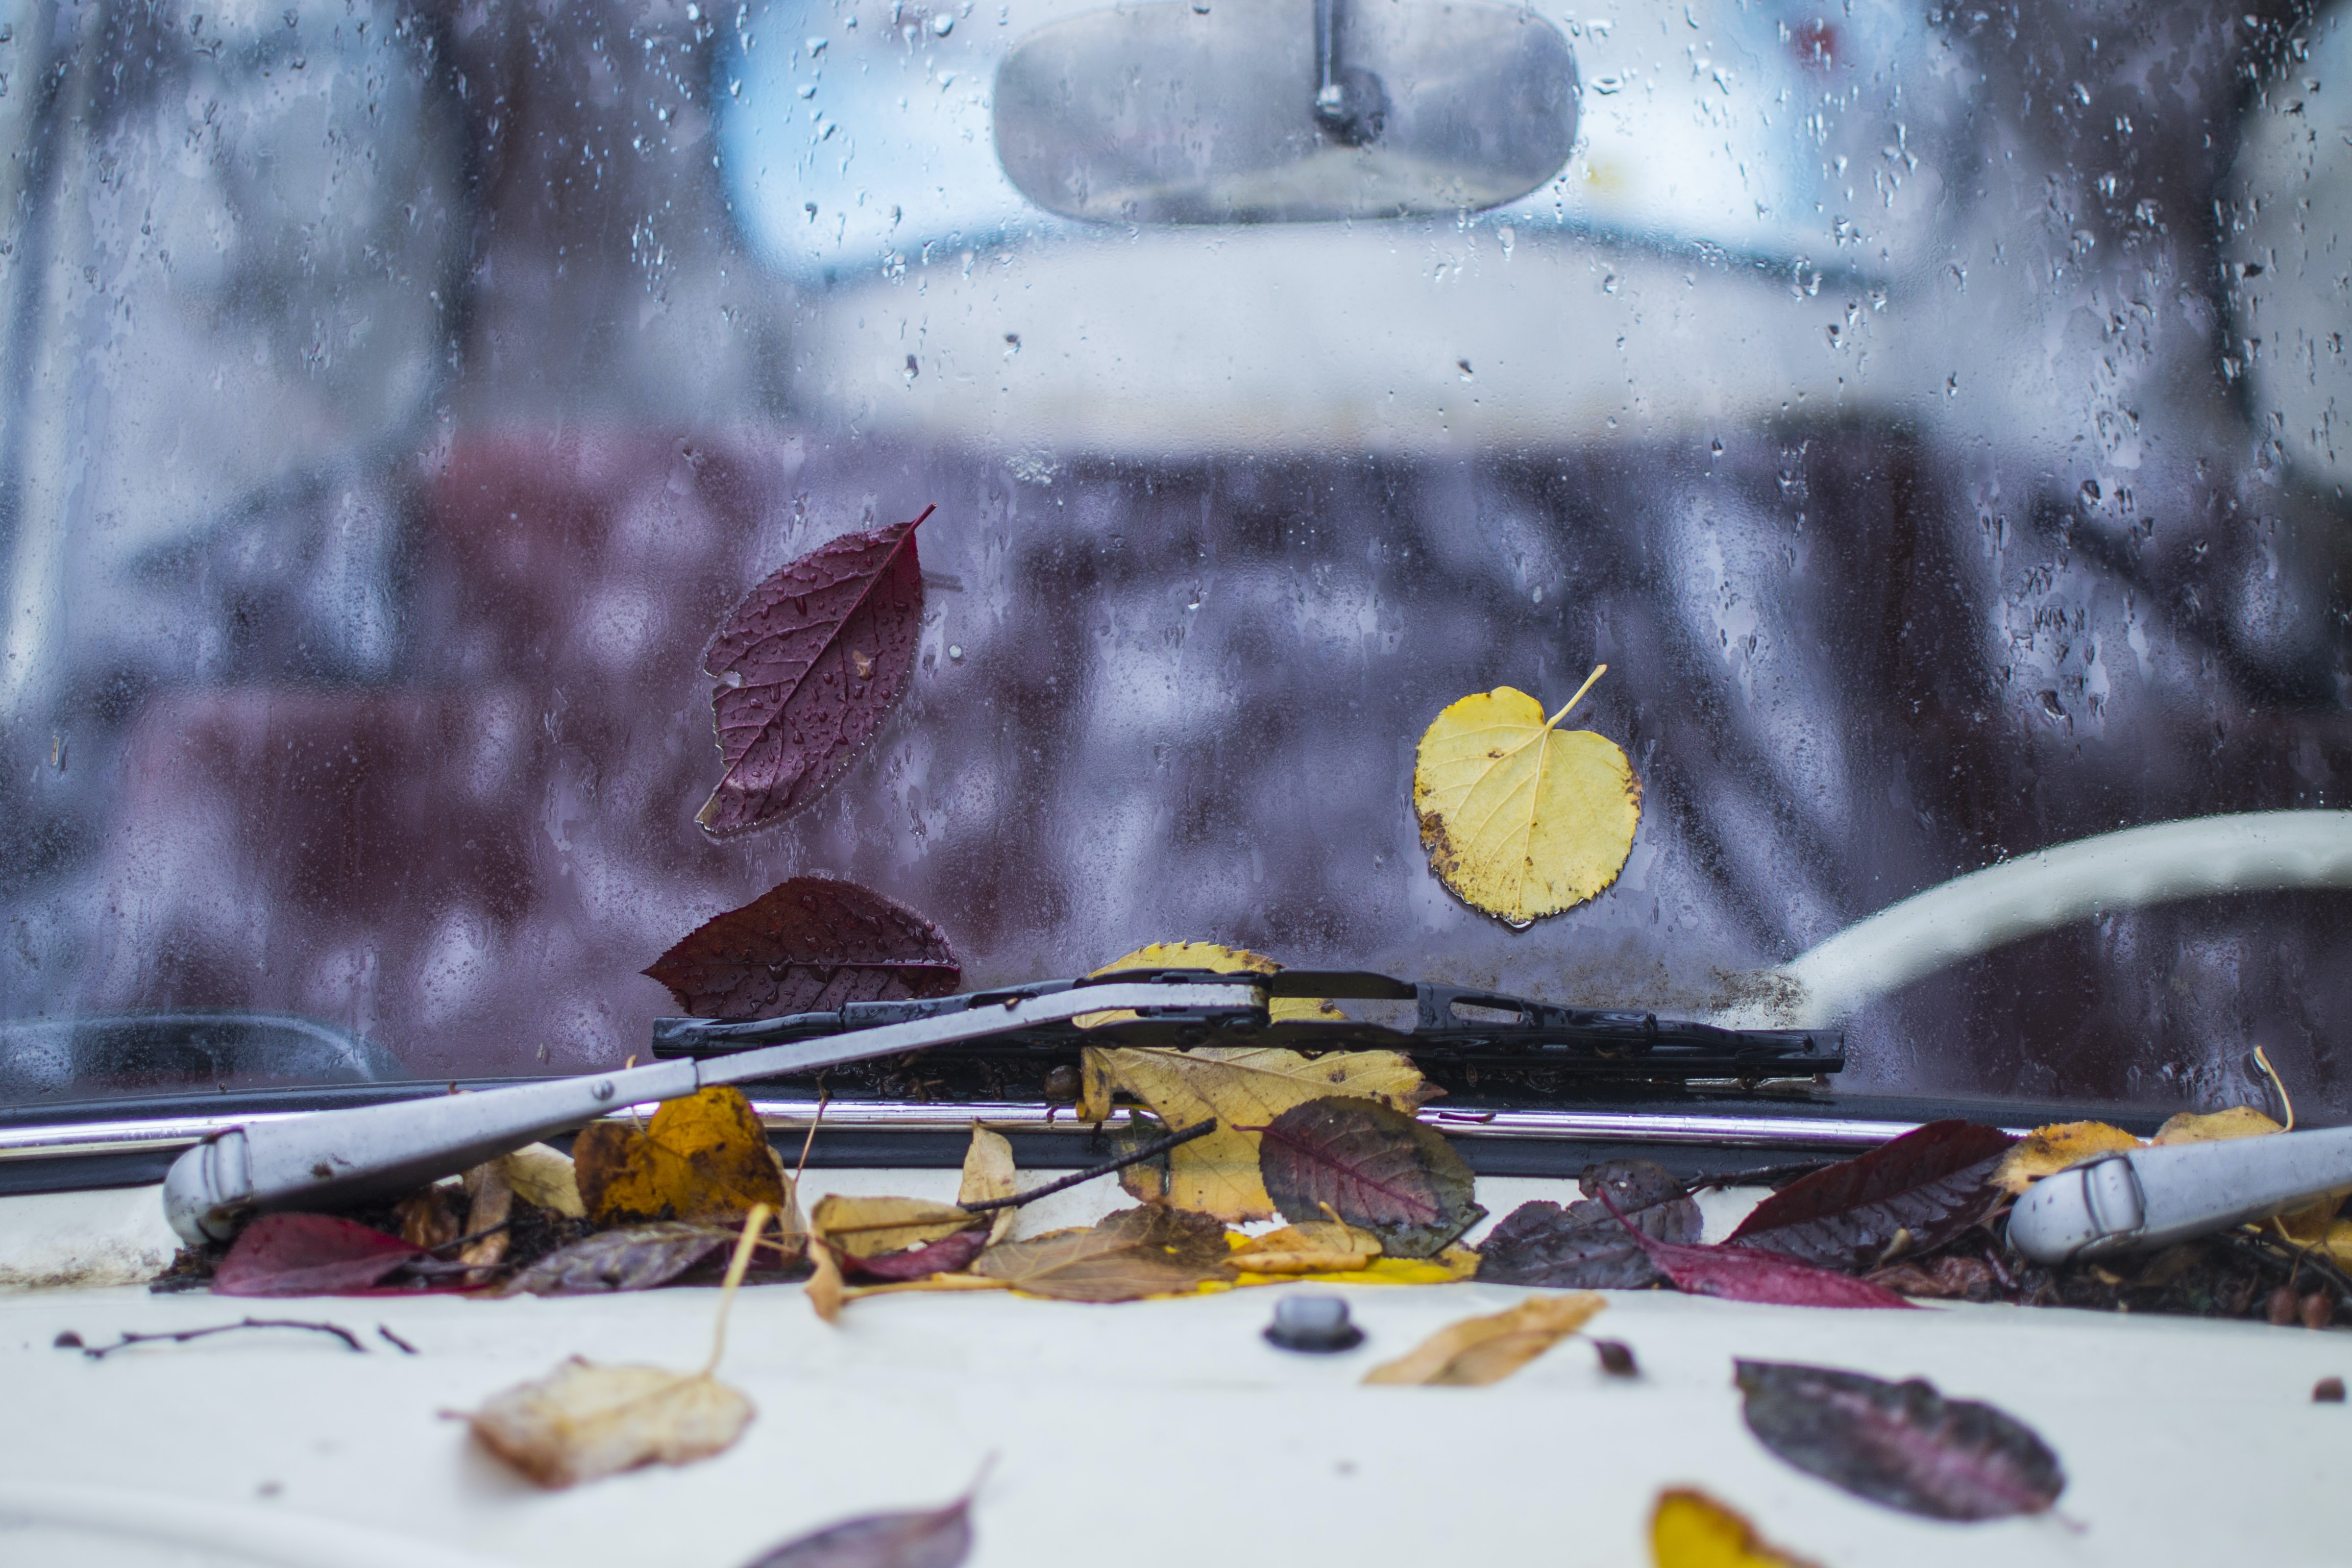 withered leaves pile into vehicle windshield